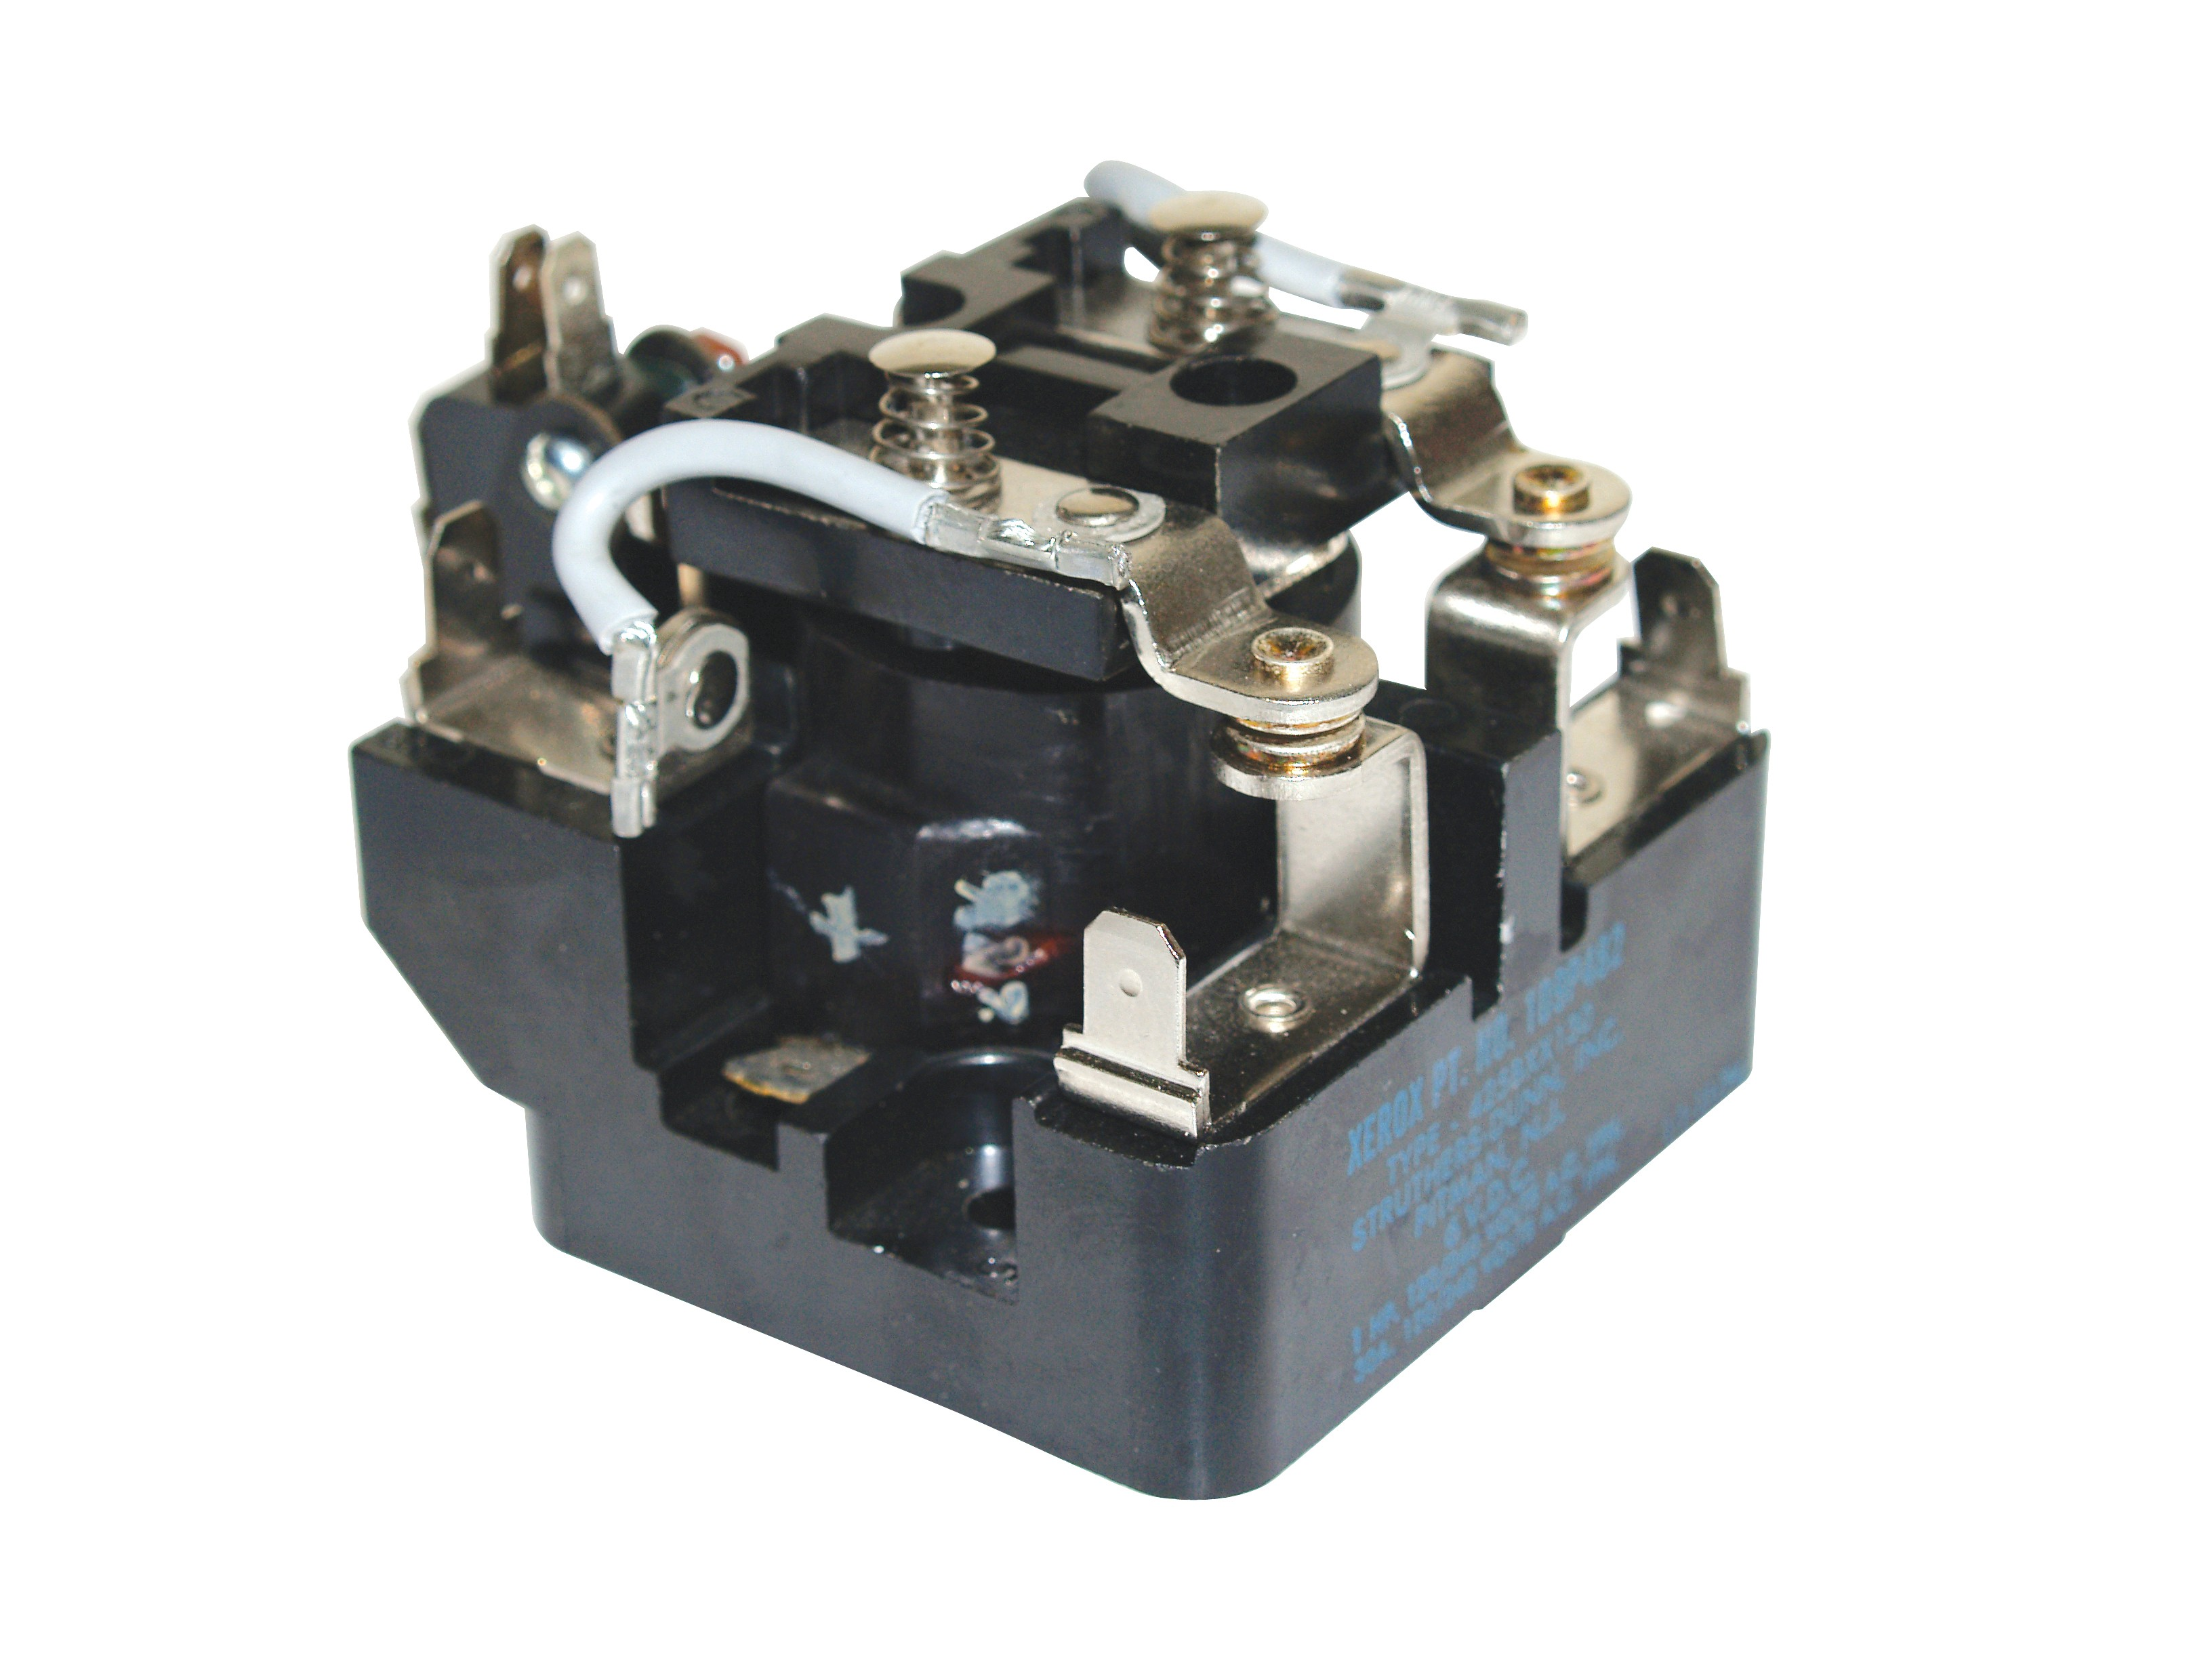 Hpr High Power Coaxial Relay Available Via Shop The Omron G7l 109p482 Dpst W Switch 6v Current Relays